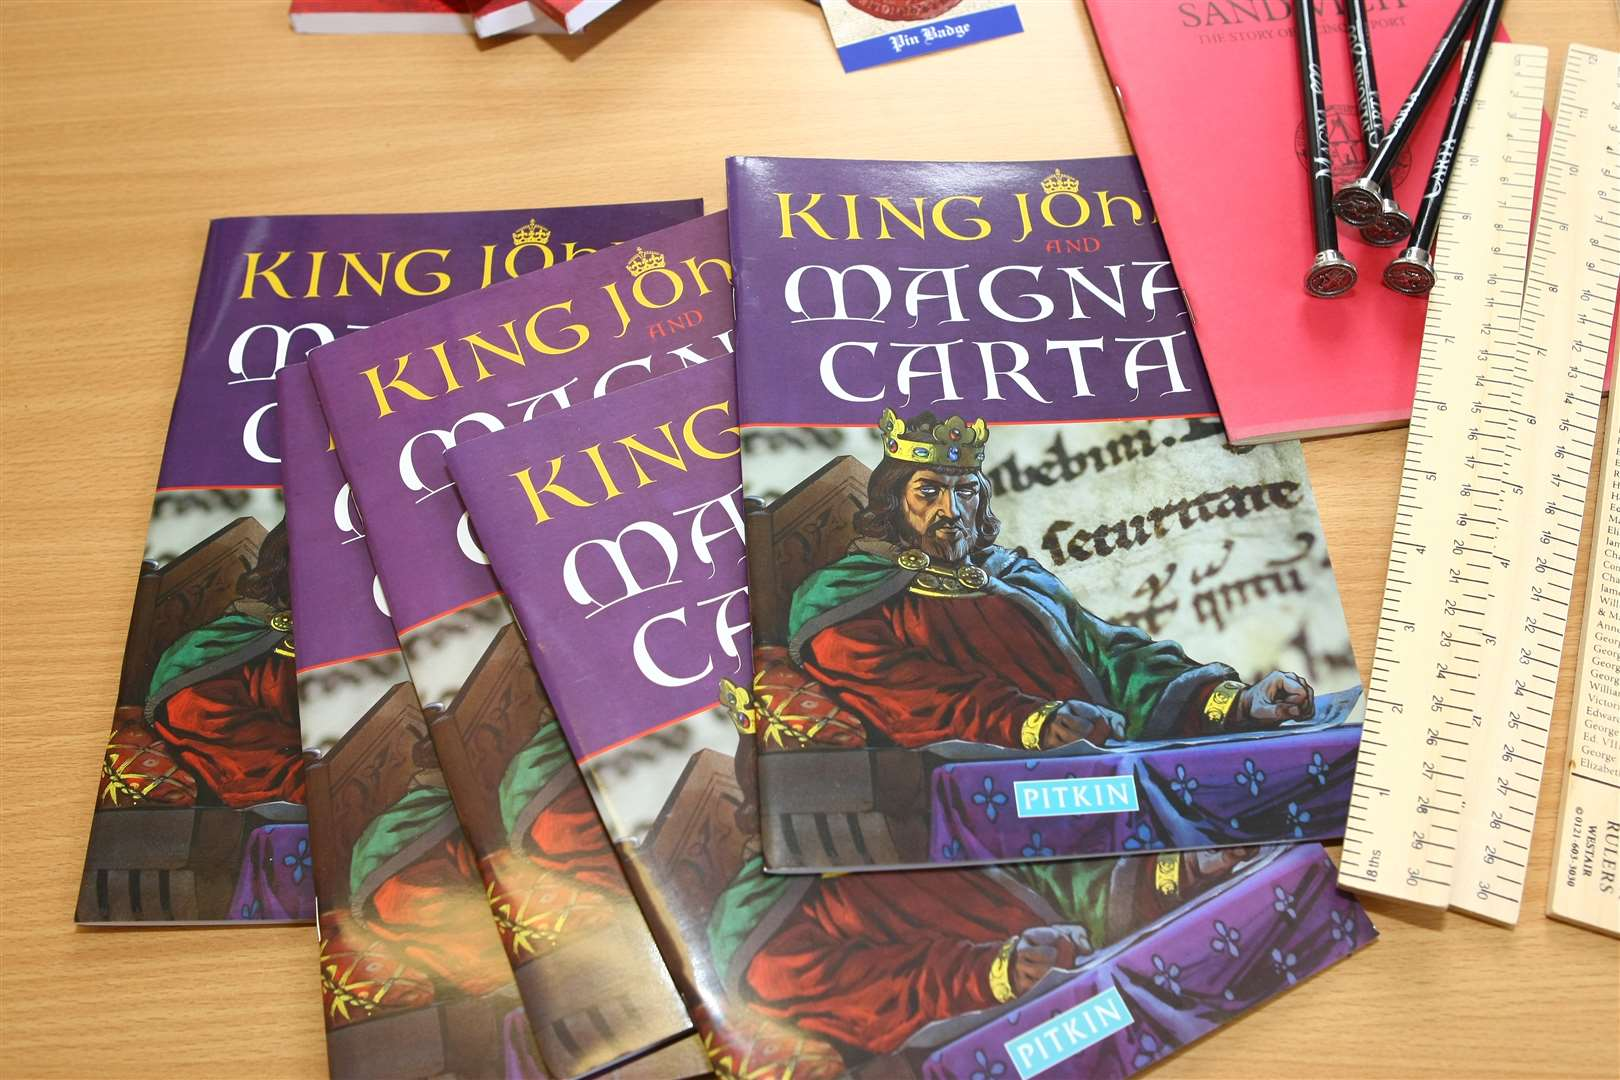 Merchandise for the Magna Carta